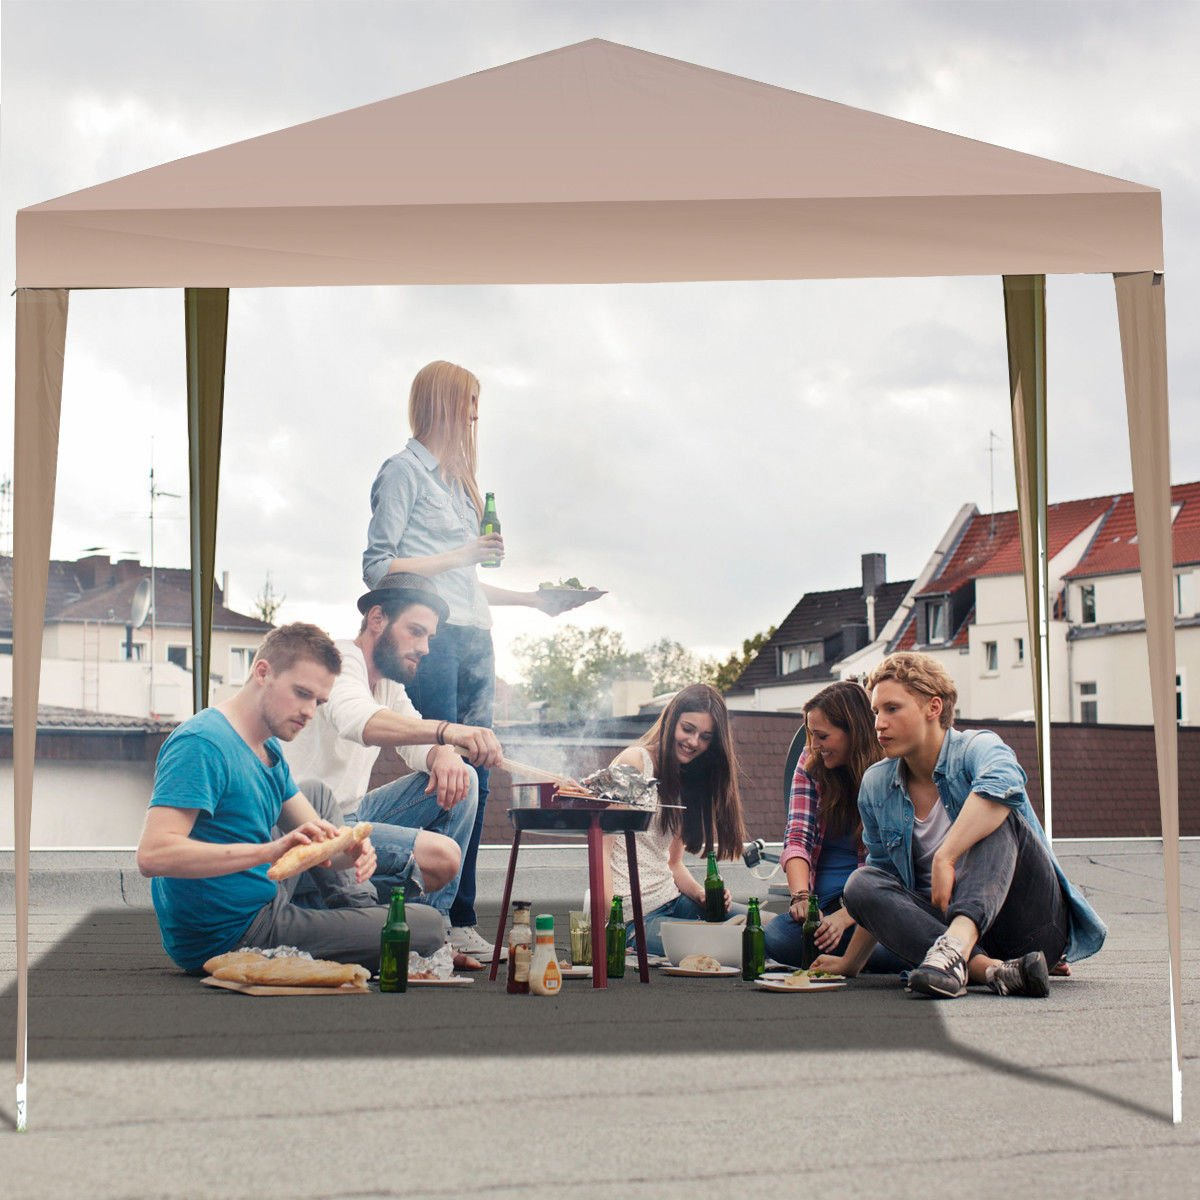 TANGKULA Outdoor Tent 10'X10' EZ Pop Up Portable Lightweight Height Adjustable Study Instant All Weather Resitant Event Party Wedding Park Canopy Gazebo Shelter Tent with Carry Bag (Caffee)